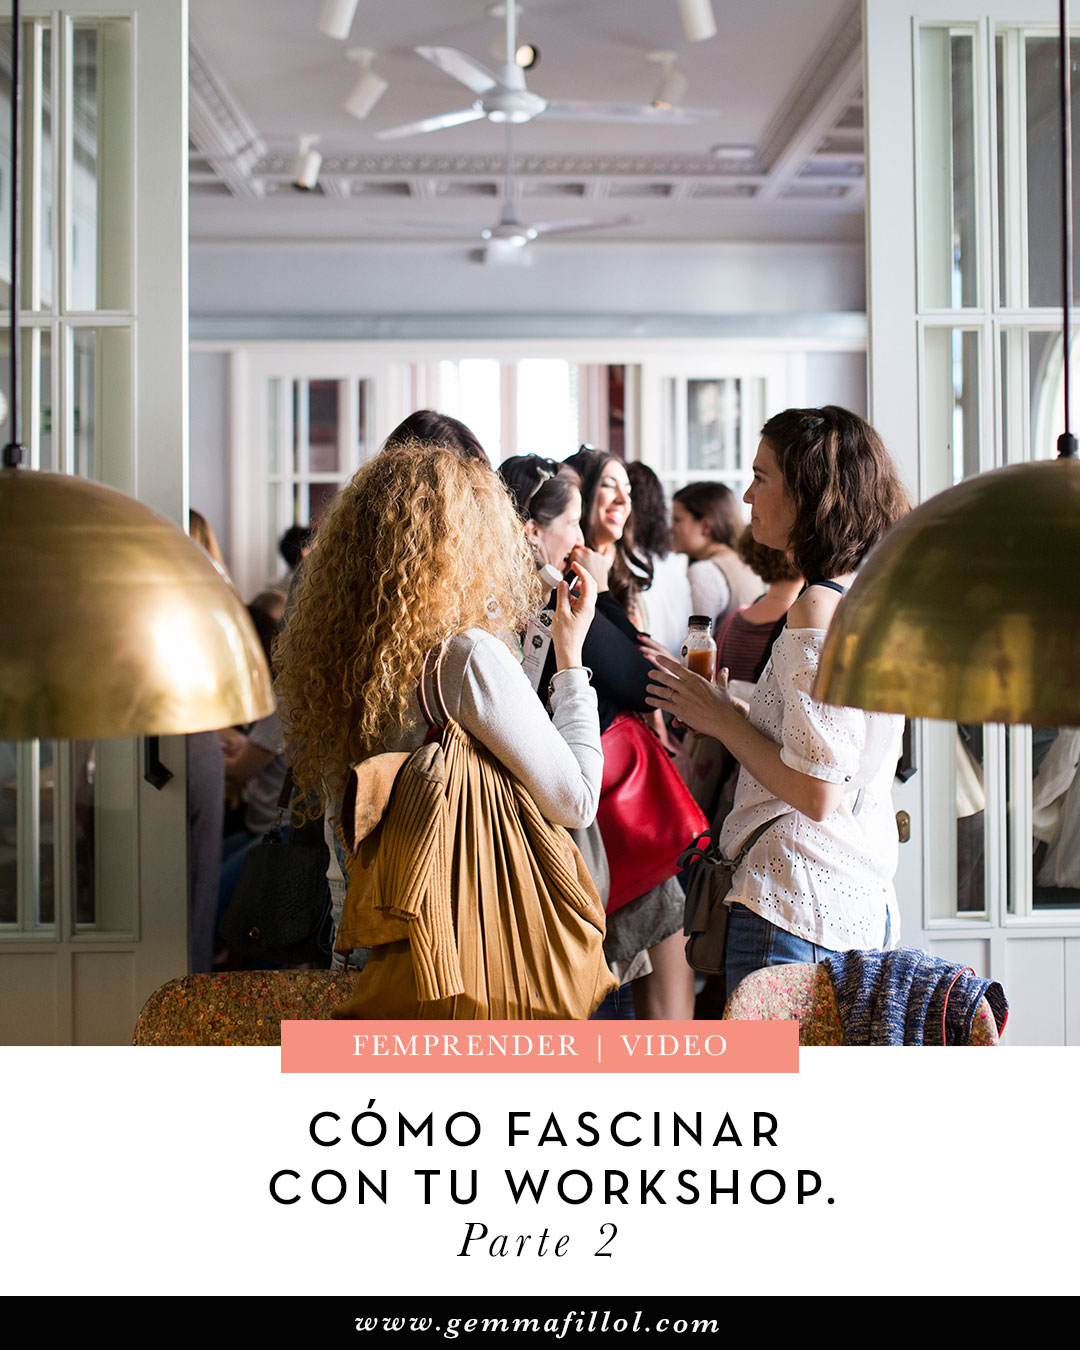 COMOFASCINARCONTUWORKSHOP